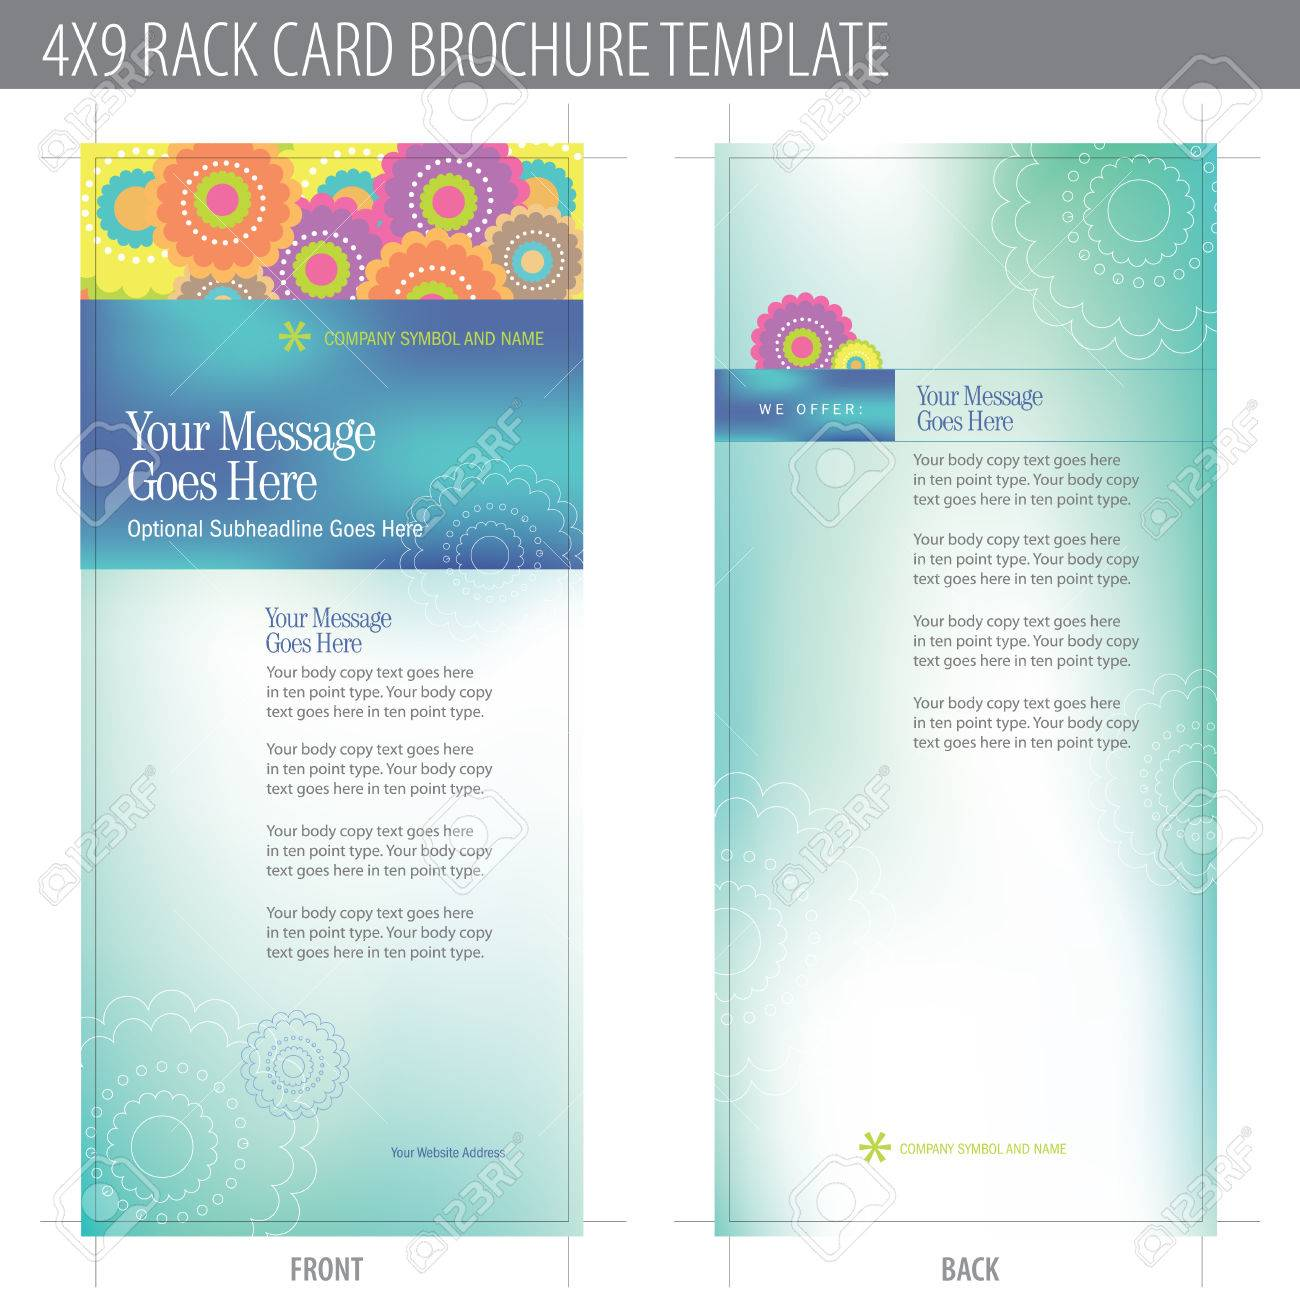 4x9 Rack Card Brochure Template (includes cropmarks, bleeds, and keyline - elements in layers) More in portfolio Stock Vector - 4775958